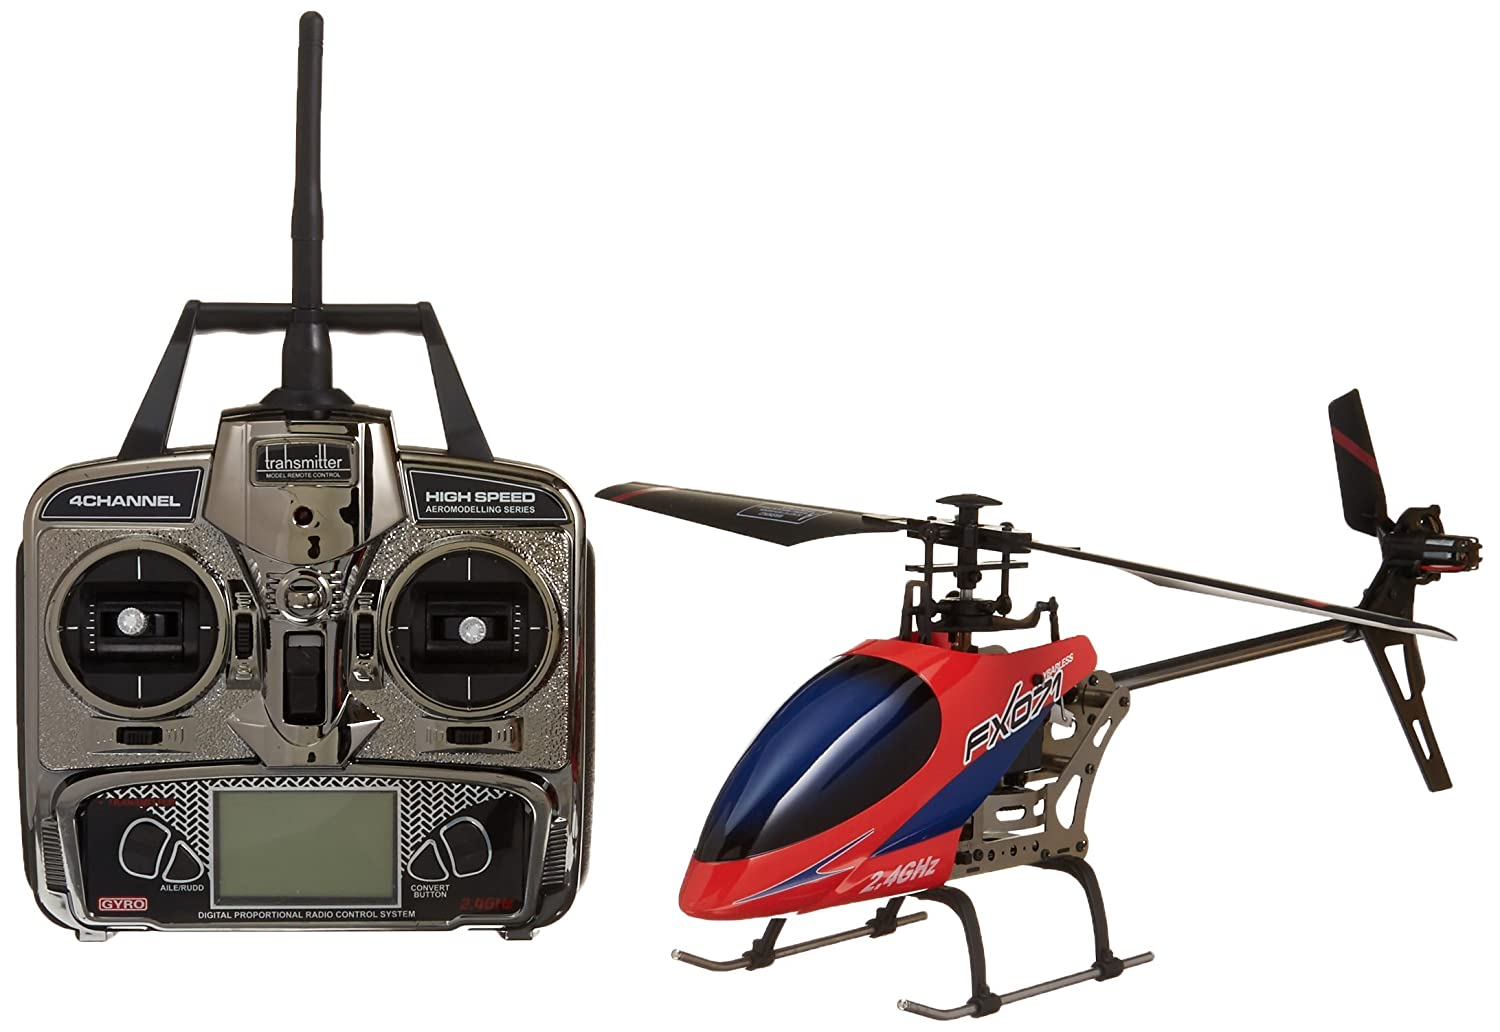 scale rc helicopters for sale